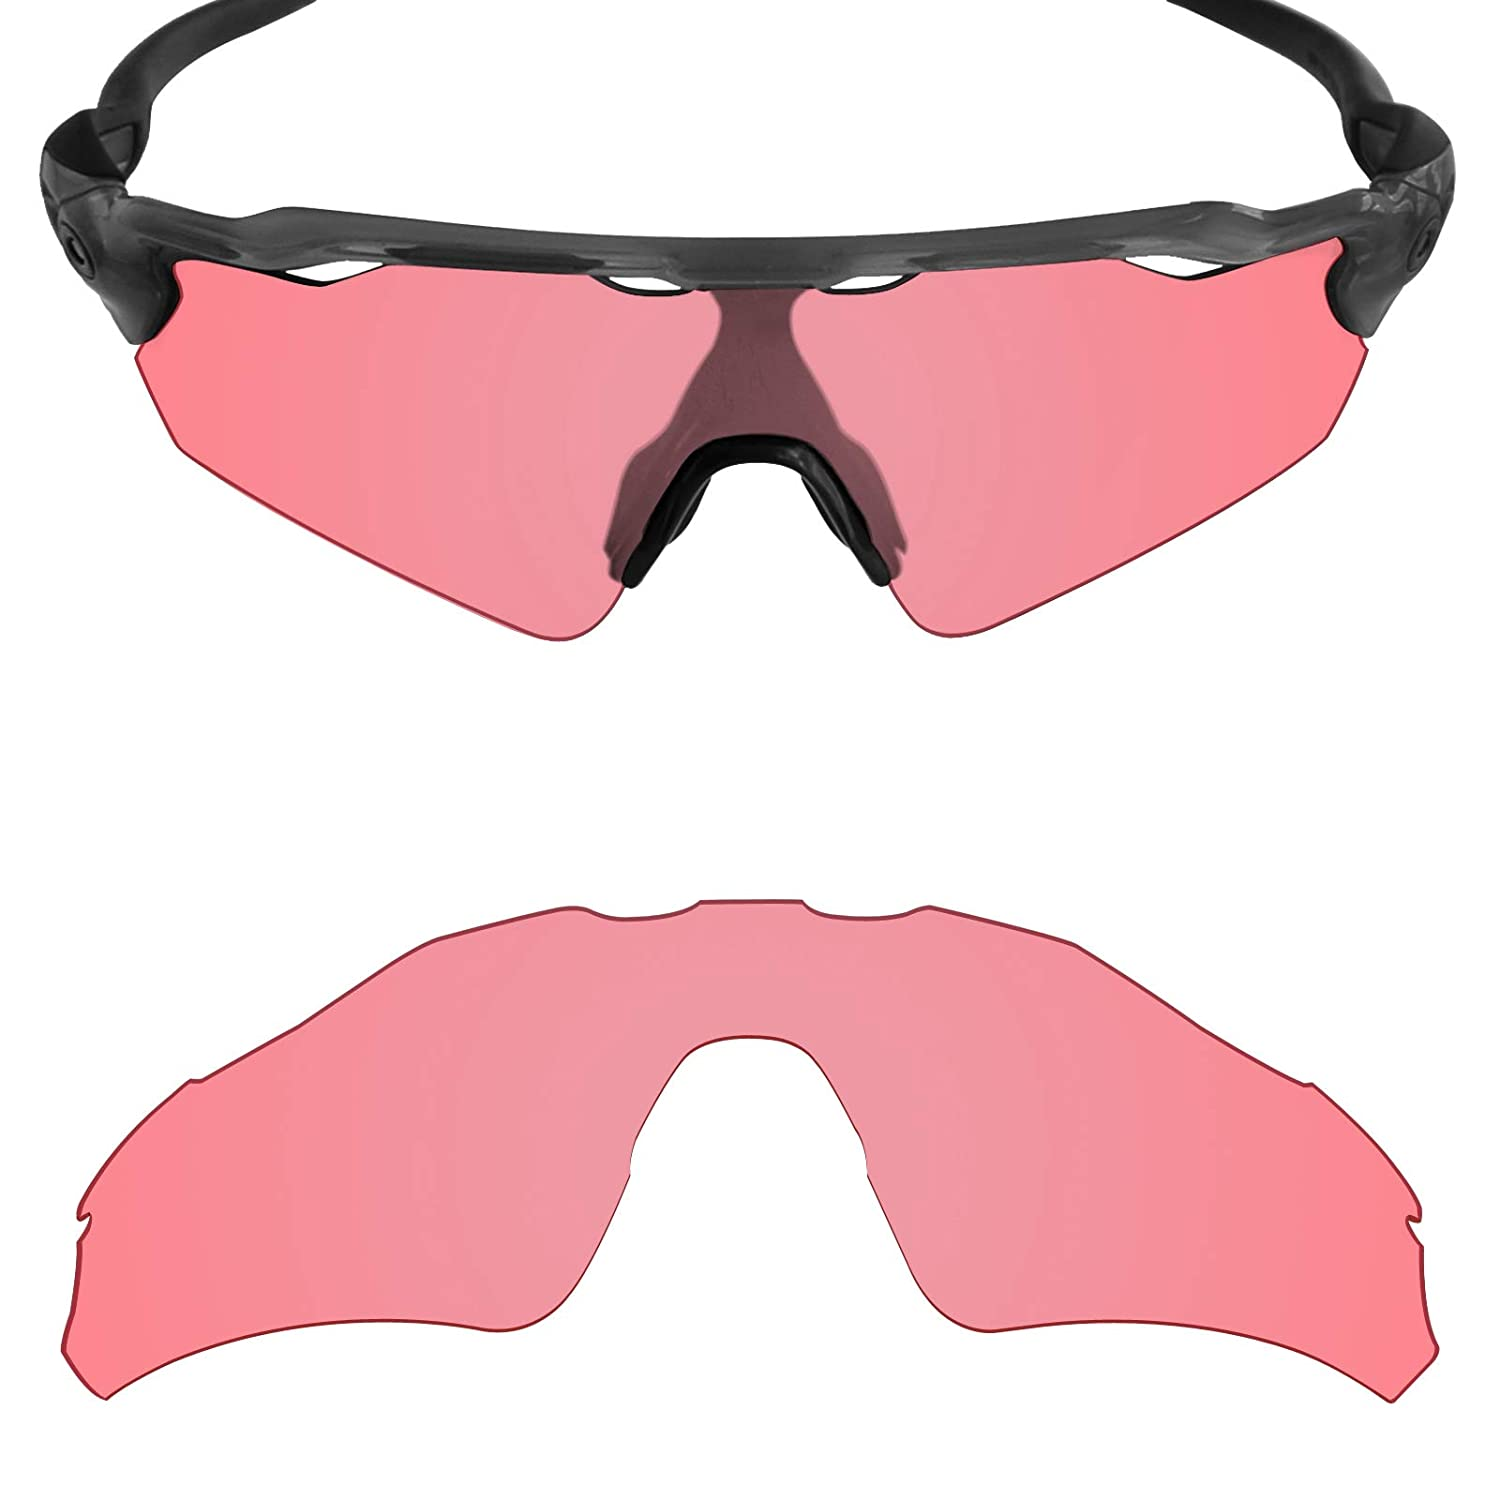 e50f491339 Amazon.com  Mryok UV400 Replacement Lenses for Oakley Radar EV Path - HD  Pink  Clothing